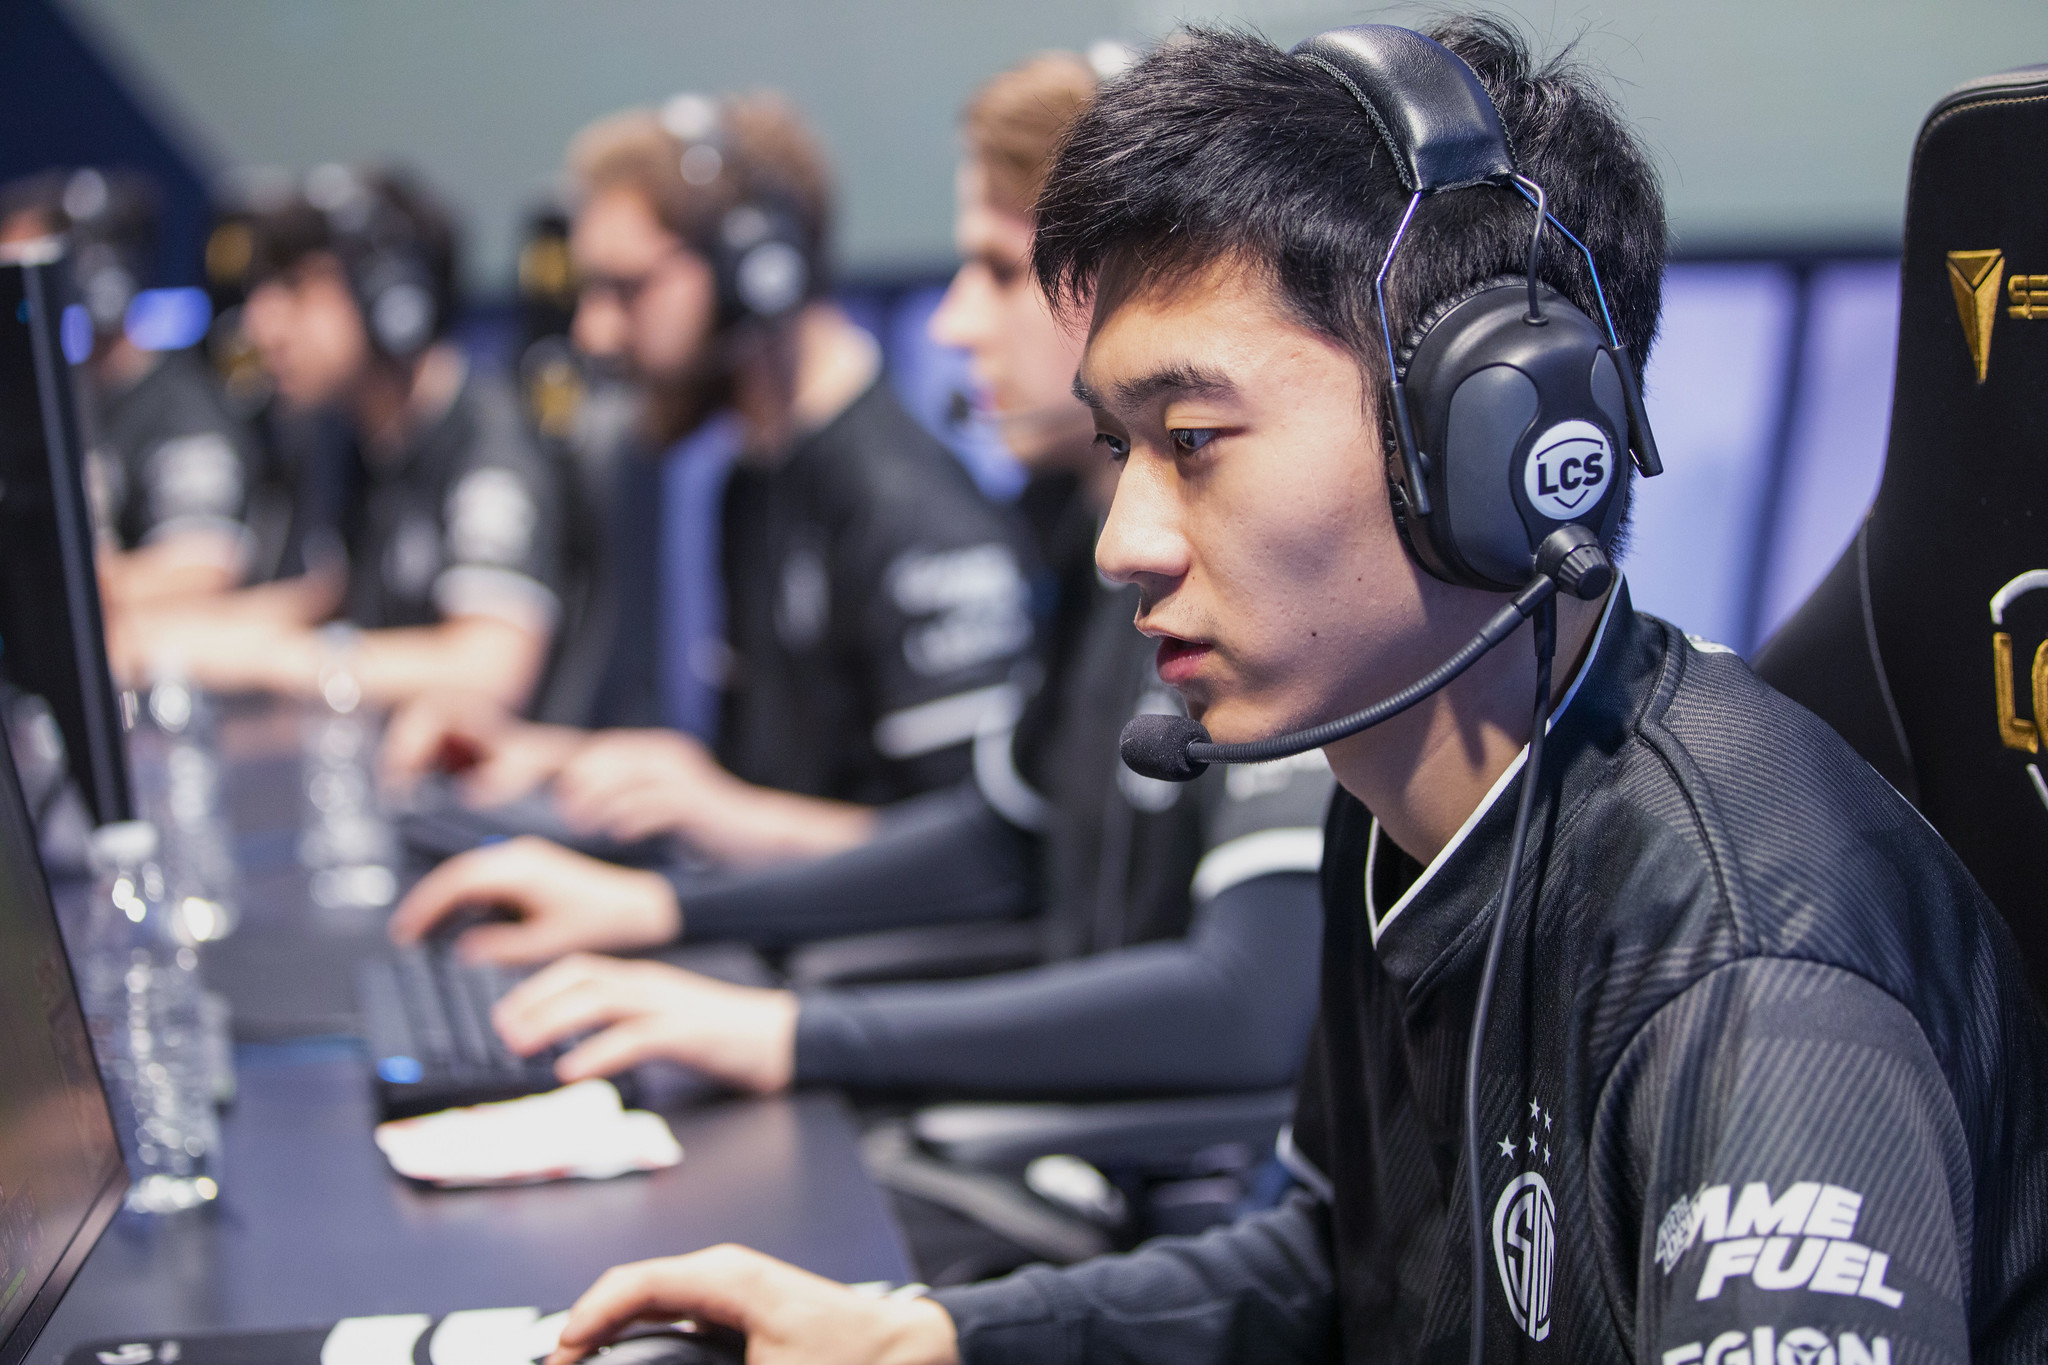 Biofrost Support player for TSM in LCS